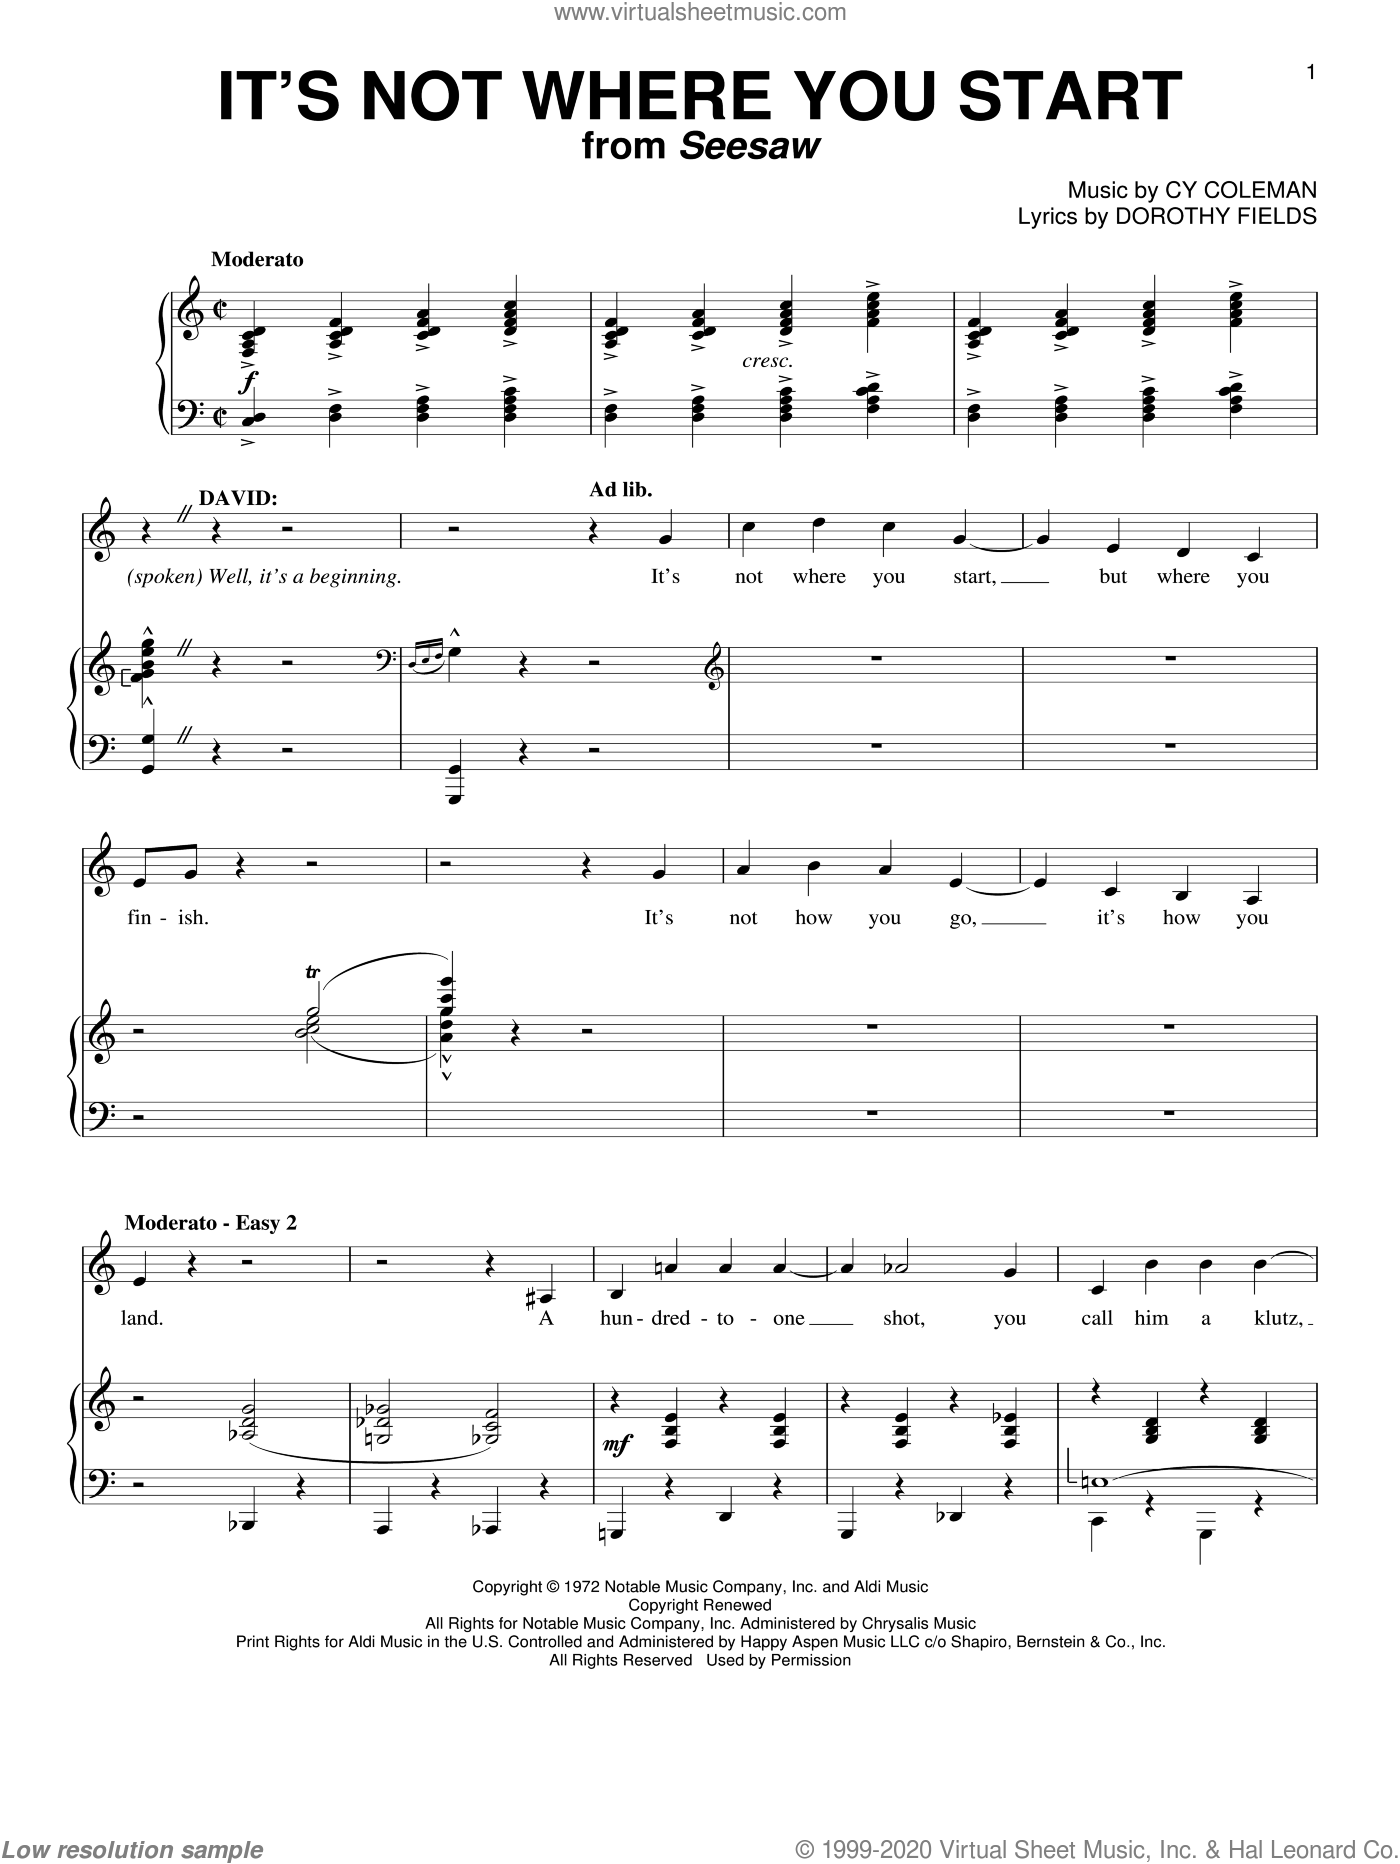 It's Not Where You Start sheet music for voice and piano by Cy Coleman and Dorothy Fields, intermediate voice. Score Image Preview.